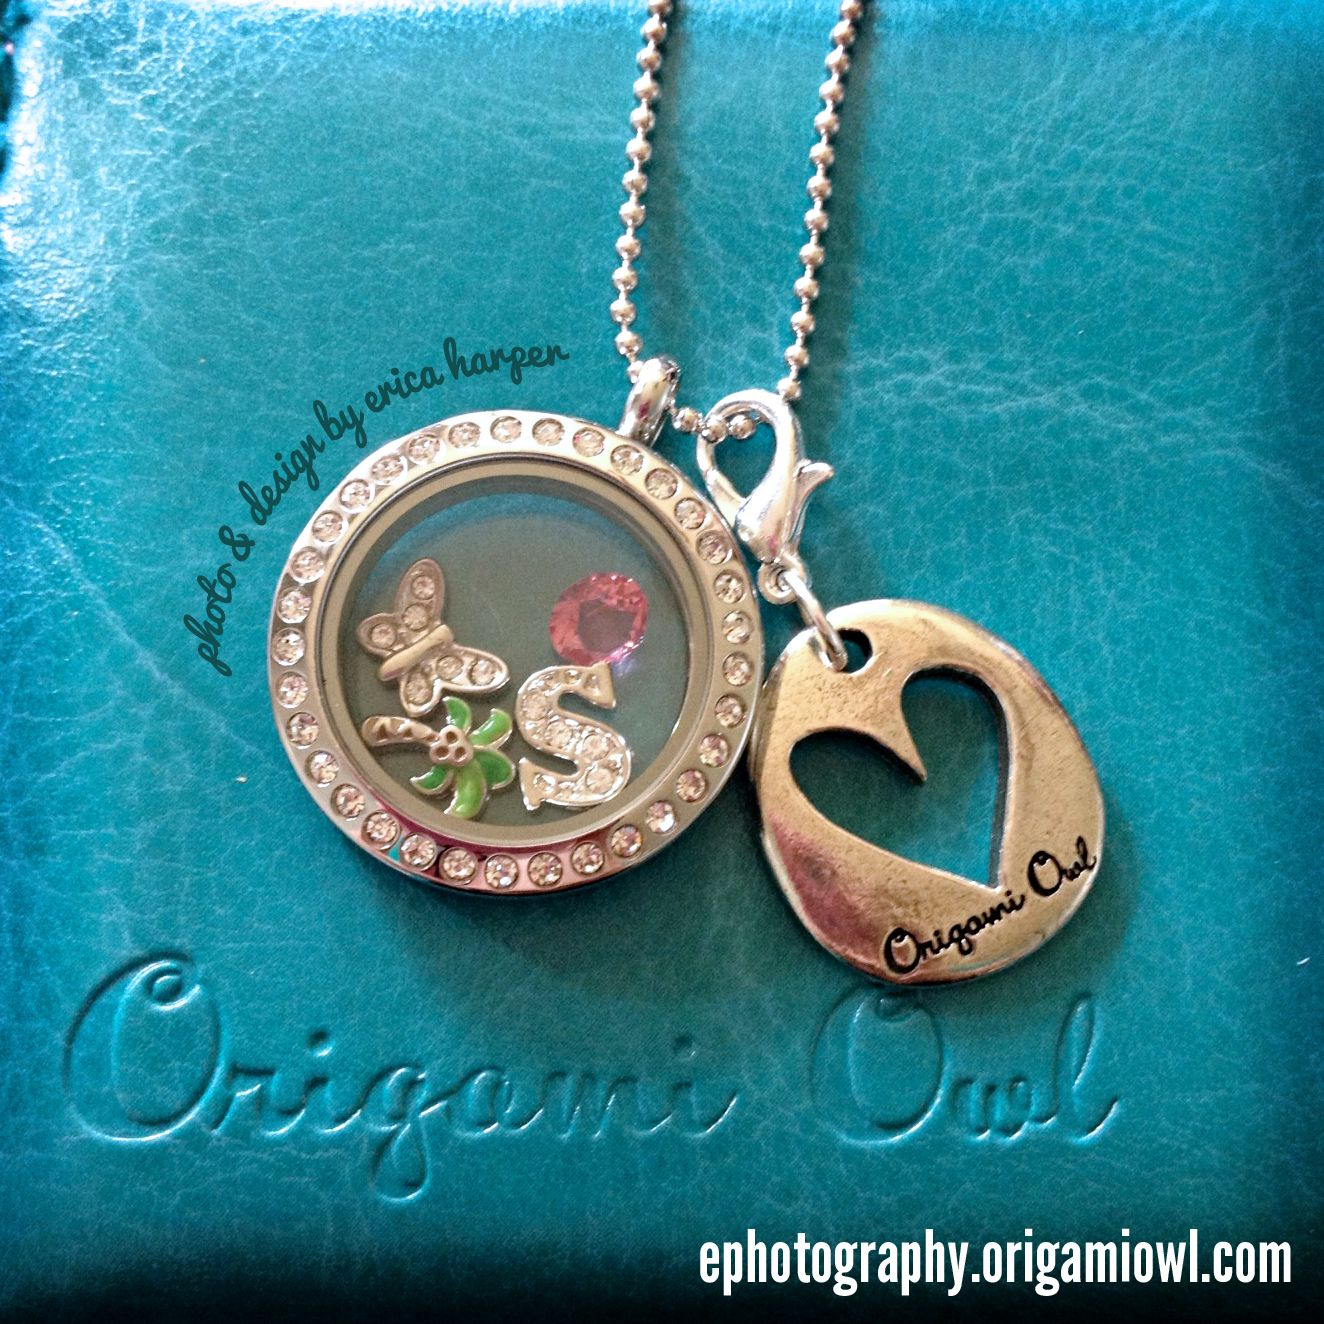 Origami Owl - Medium Silver Locket with Crystals